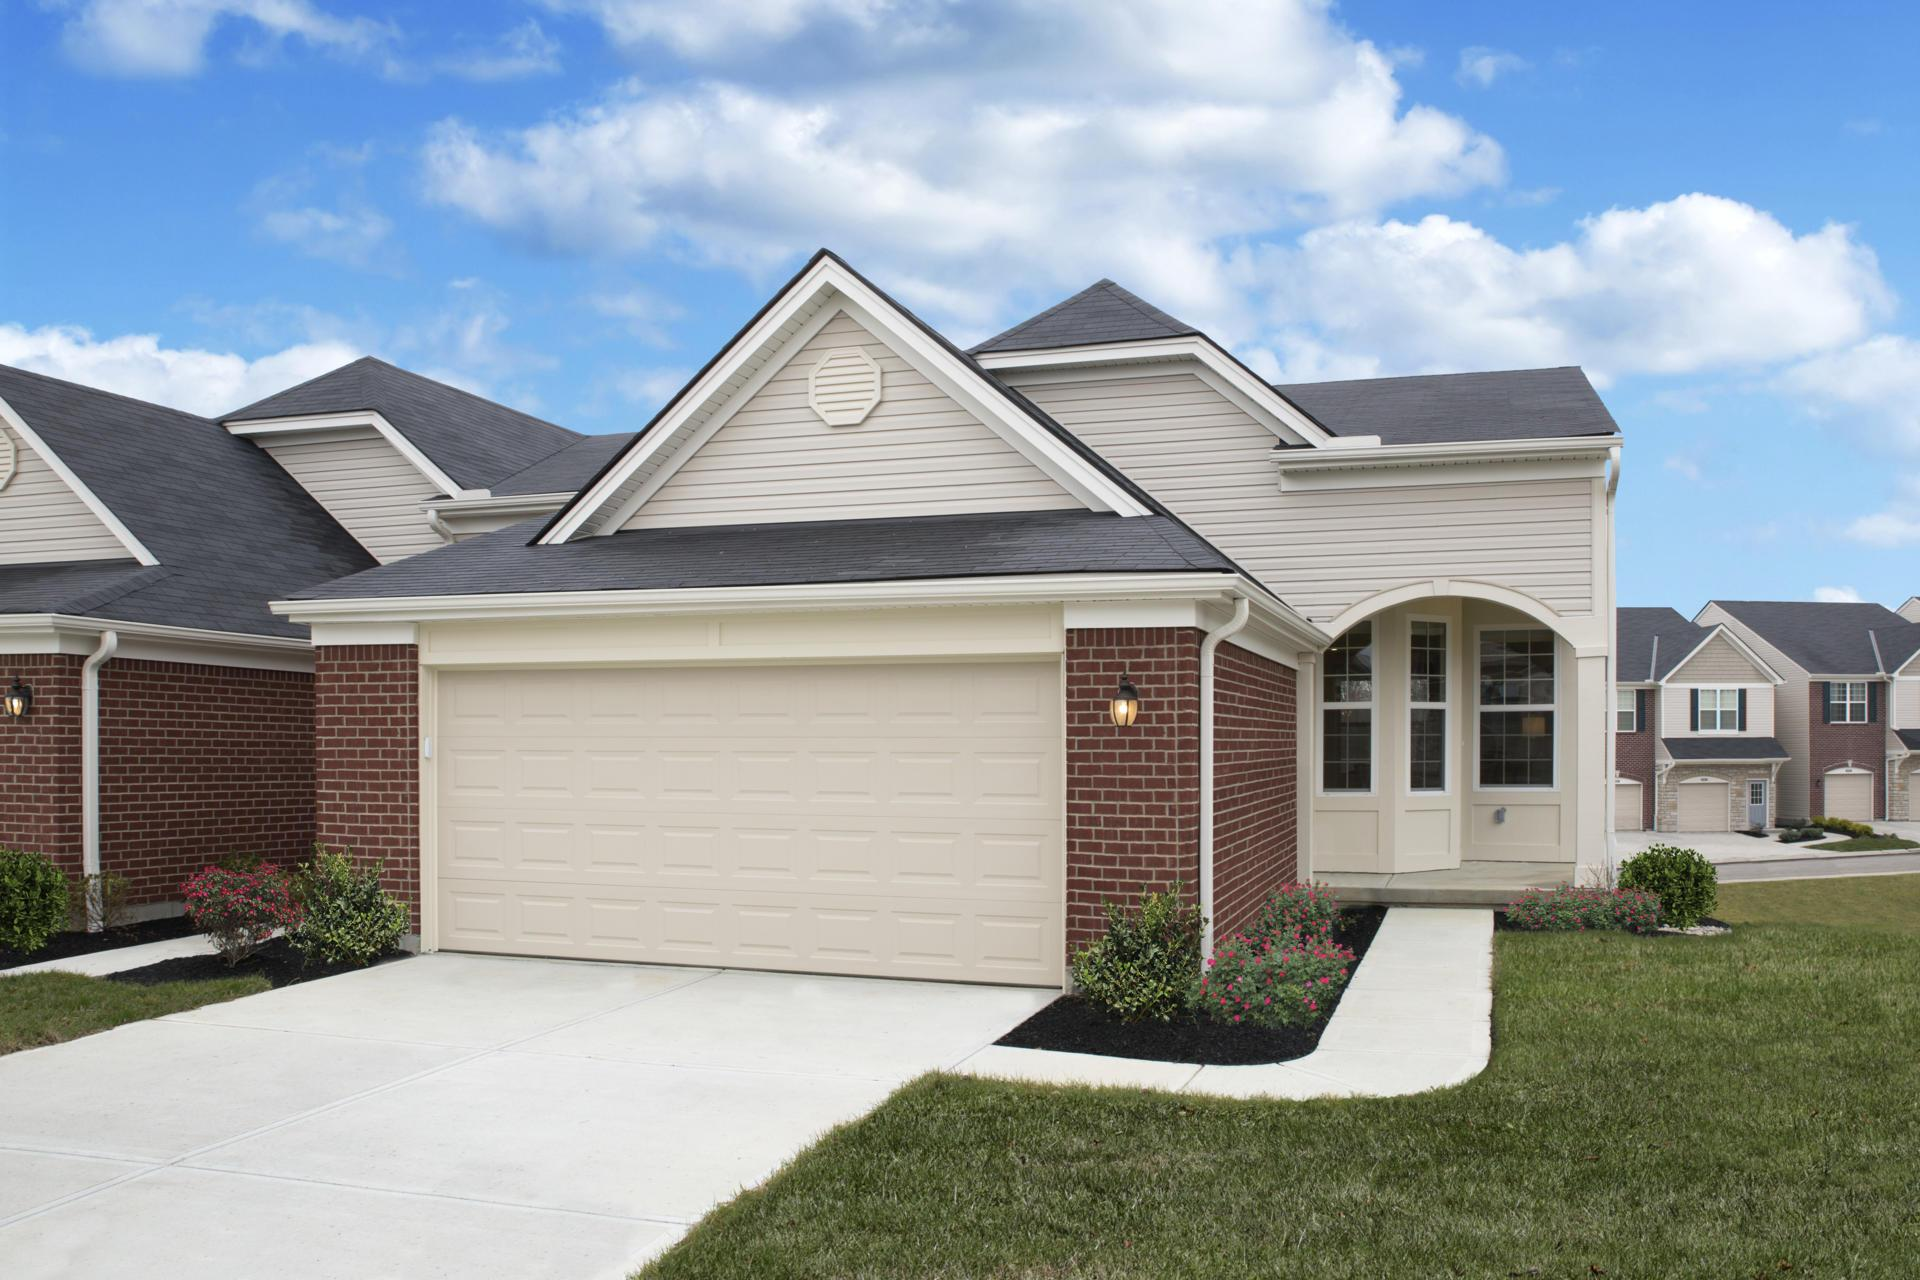 'Cantering Hills at Steeplechase Townhomes' by Drees Homes in Cincinnati